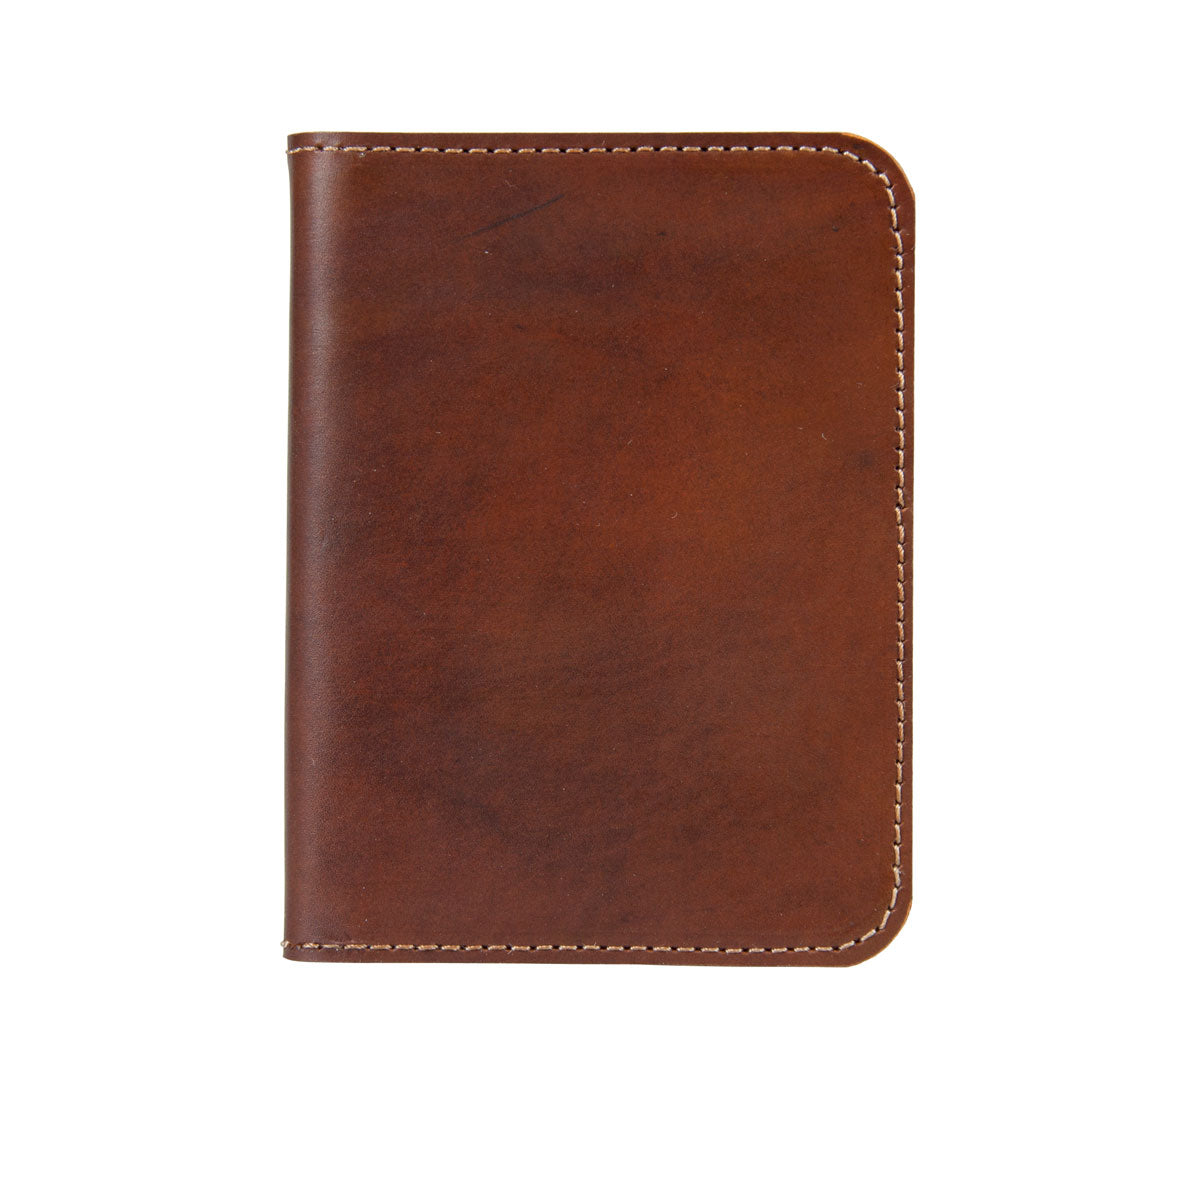 Handmade Leather Wallet - Mid Brown